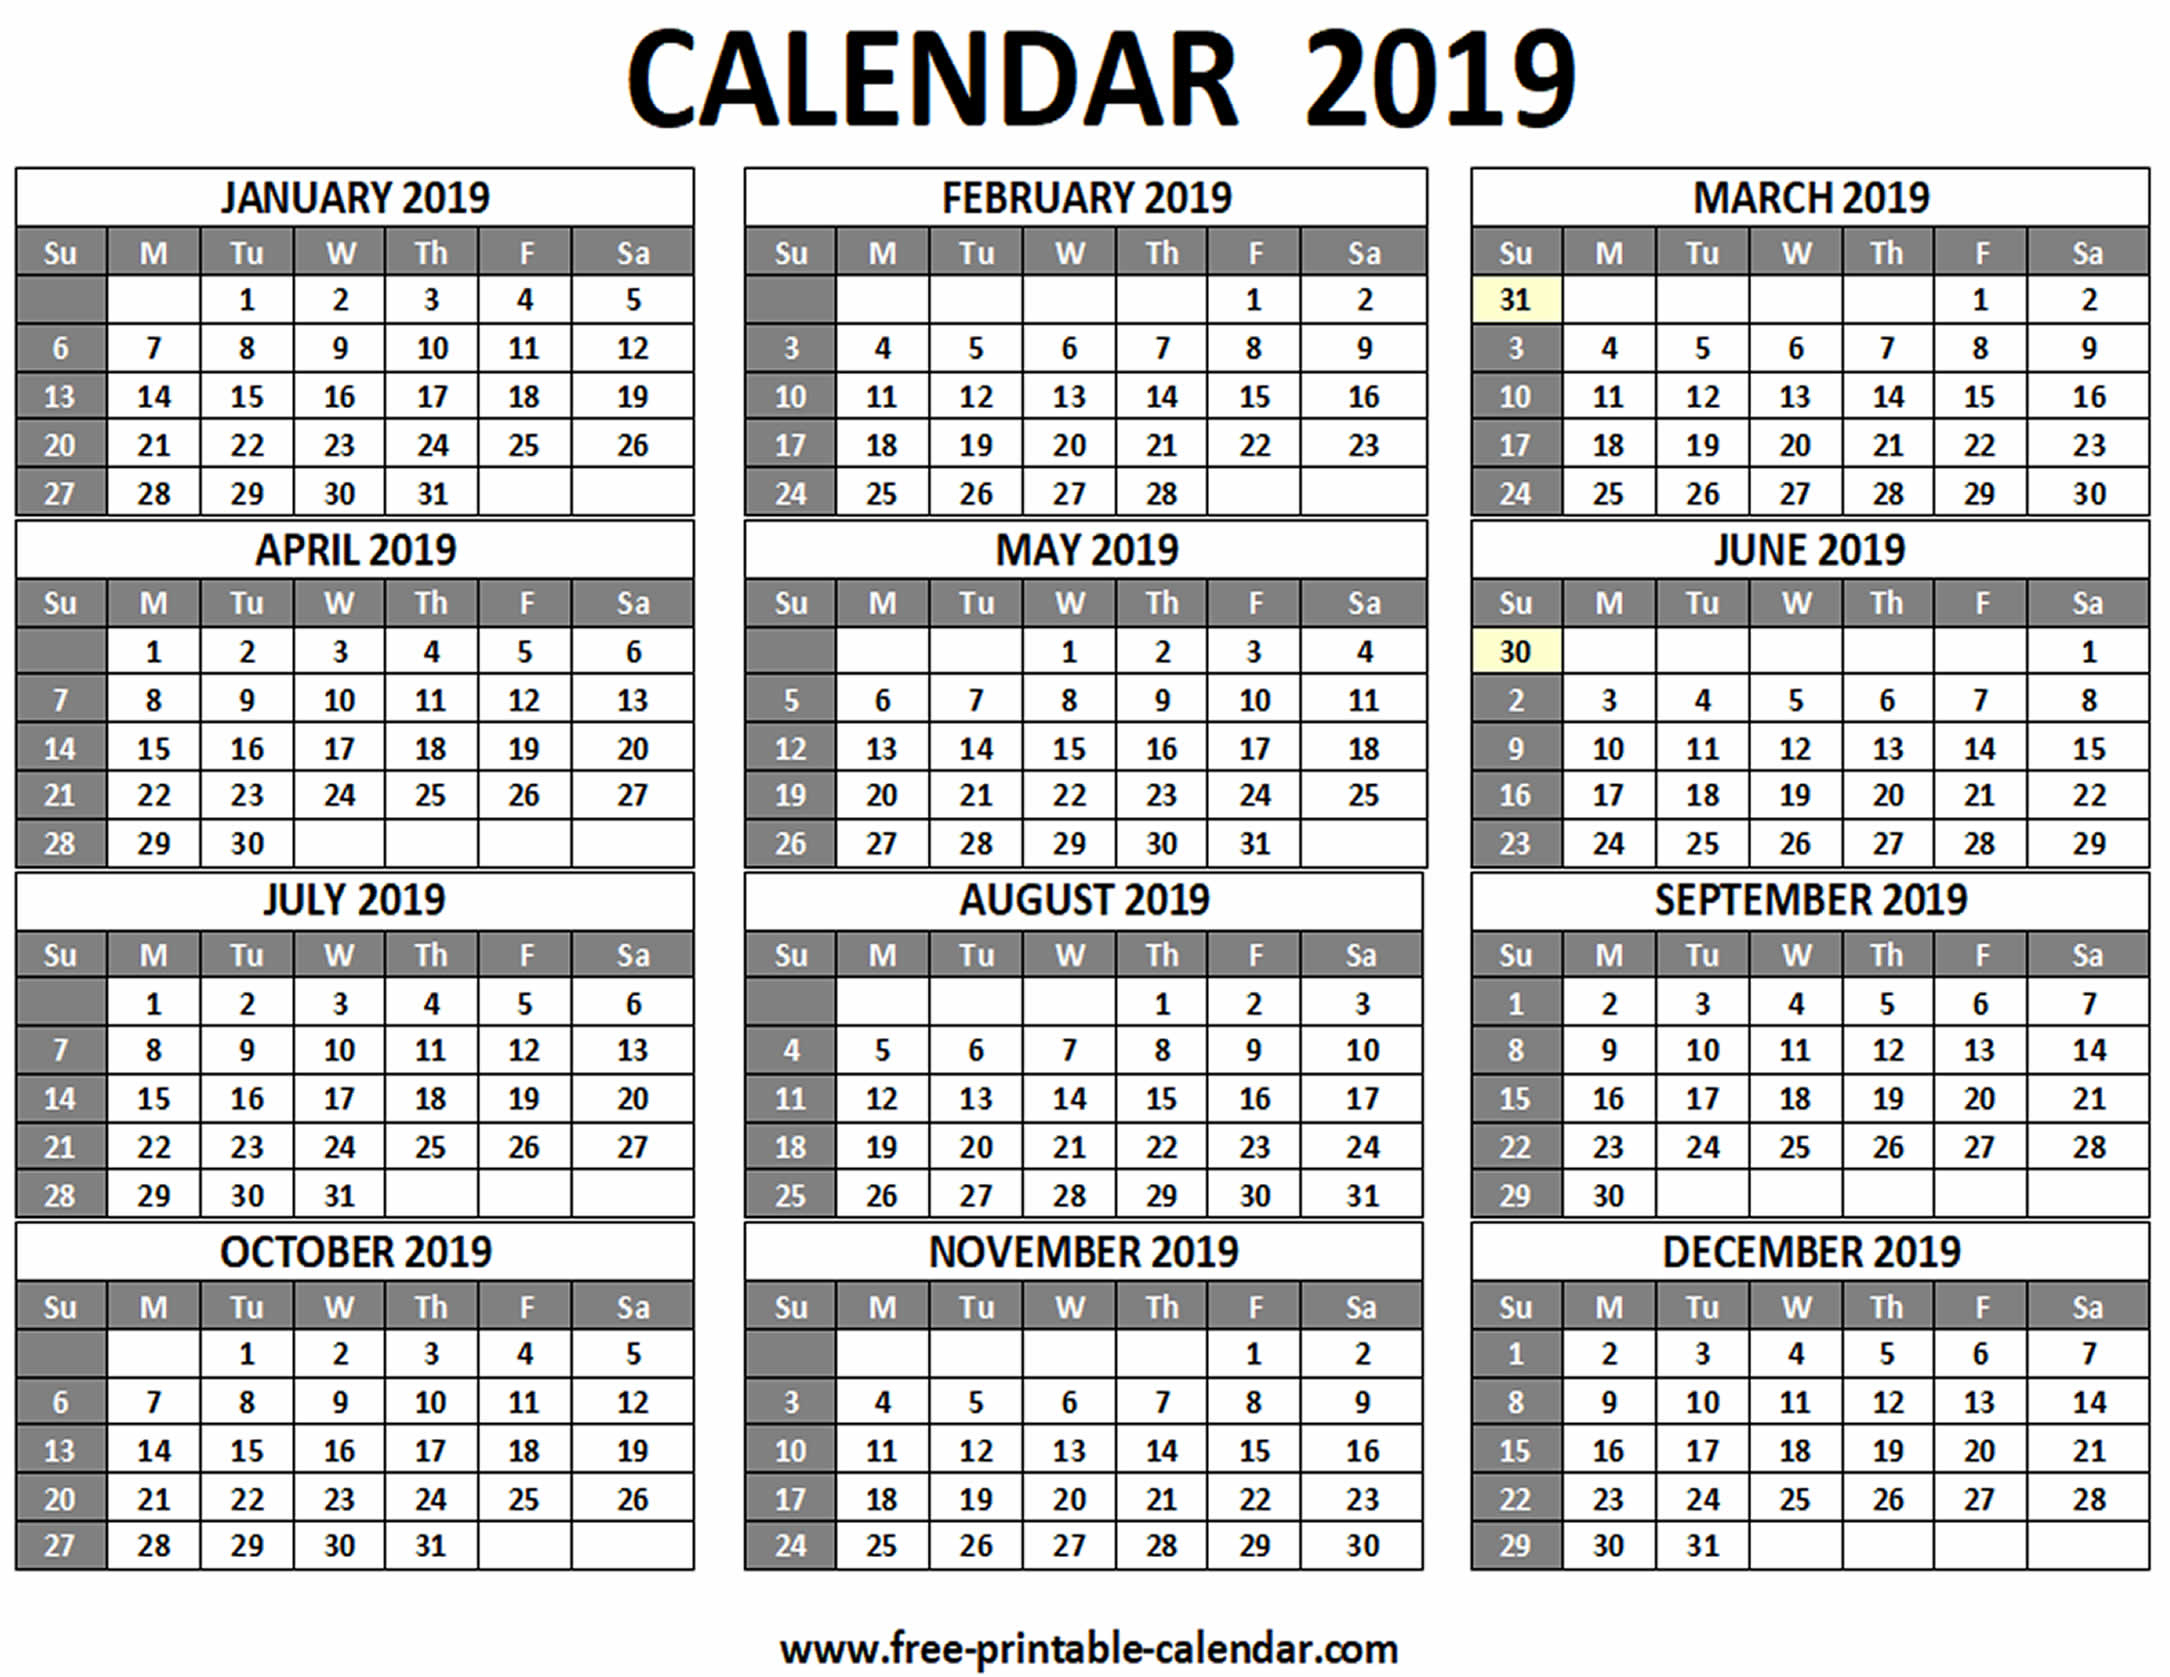 Printable 2019 Calendar - Free-Printable-Calendar within Template For Calendar With 12 Months On One Page